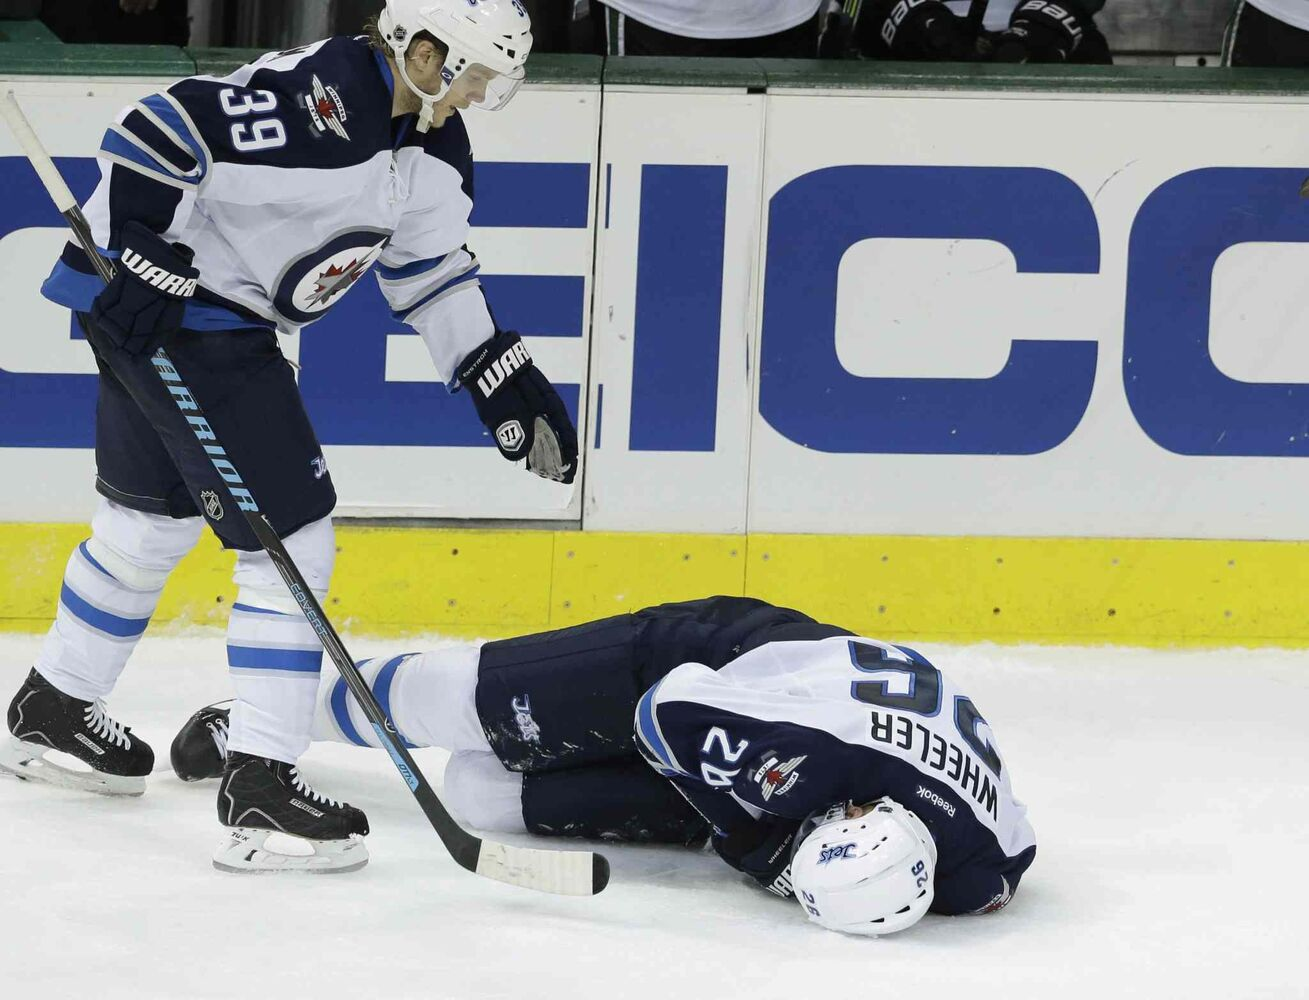 Winnipeg Jets defenceman Tobias Enstrom skates over to check on teammate Blake Wheeler after Wheeler was knocked into an open gate at the Stars' bench in the third period. Wheeler was injured on the play but returned for a shift late in the game. (L.M. OTERO / THE ASSOCIATED PRESS)